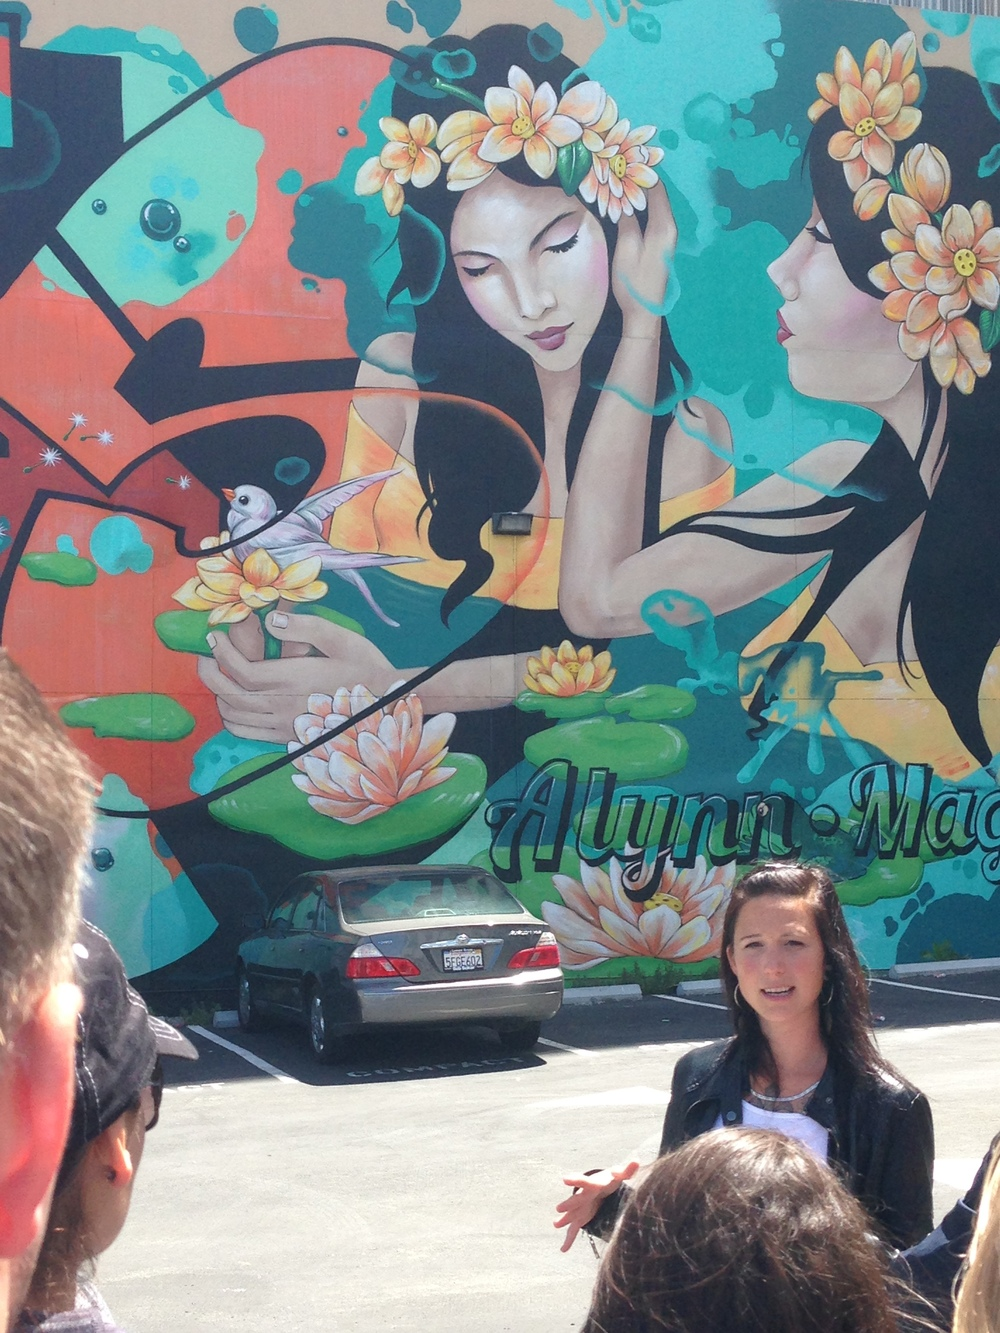 Graffiti artist Amanda Lynn talking about her commissioned work in SOMA